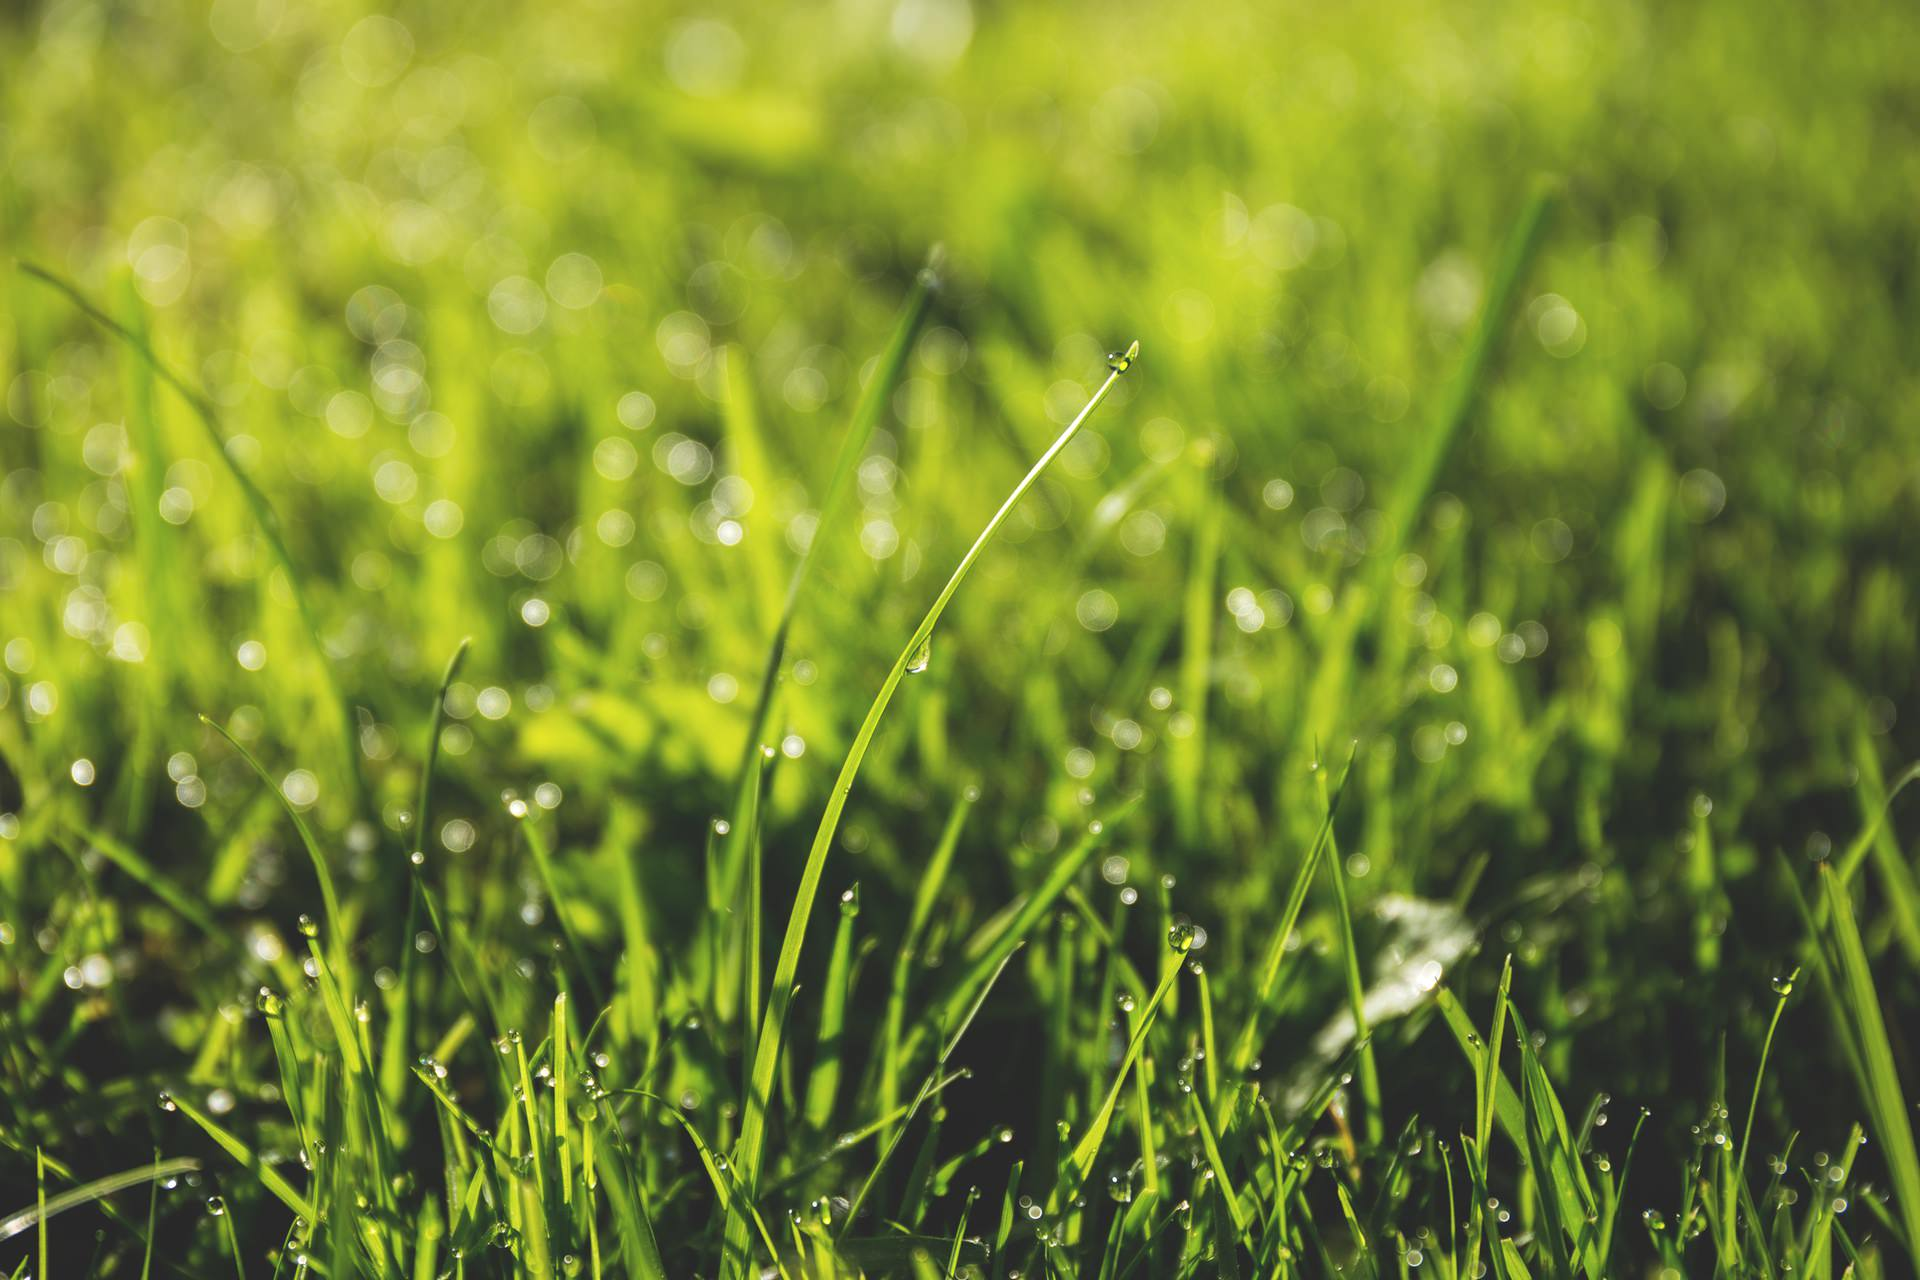 Taking Care of Your East Tennessee Lawn Without Wasting Resources